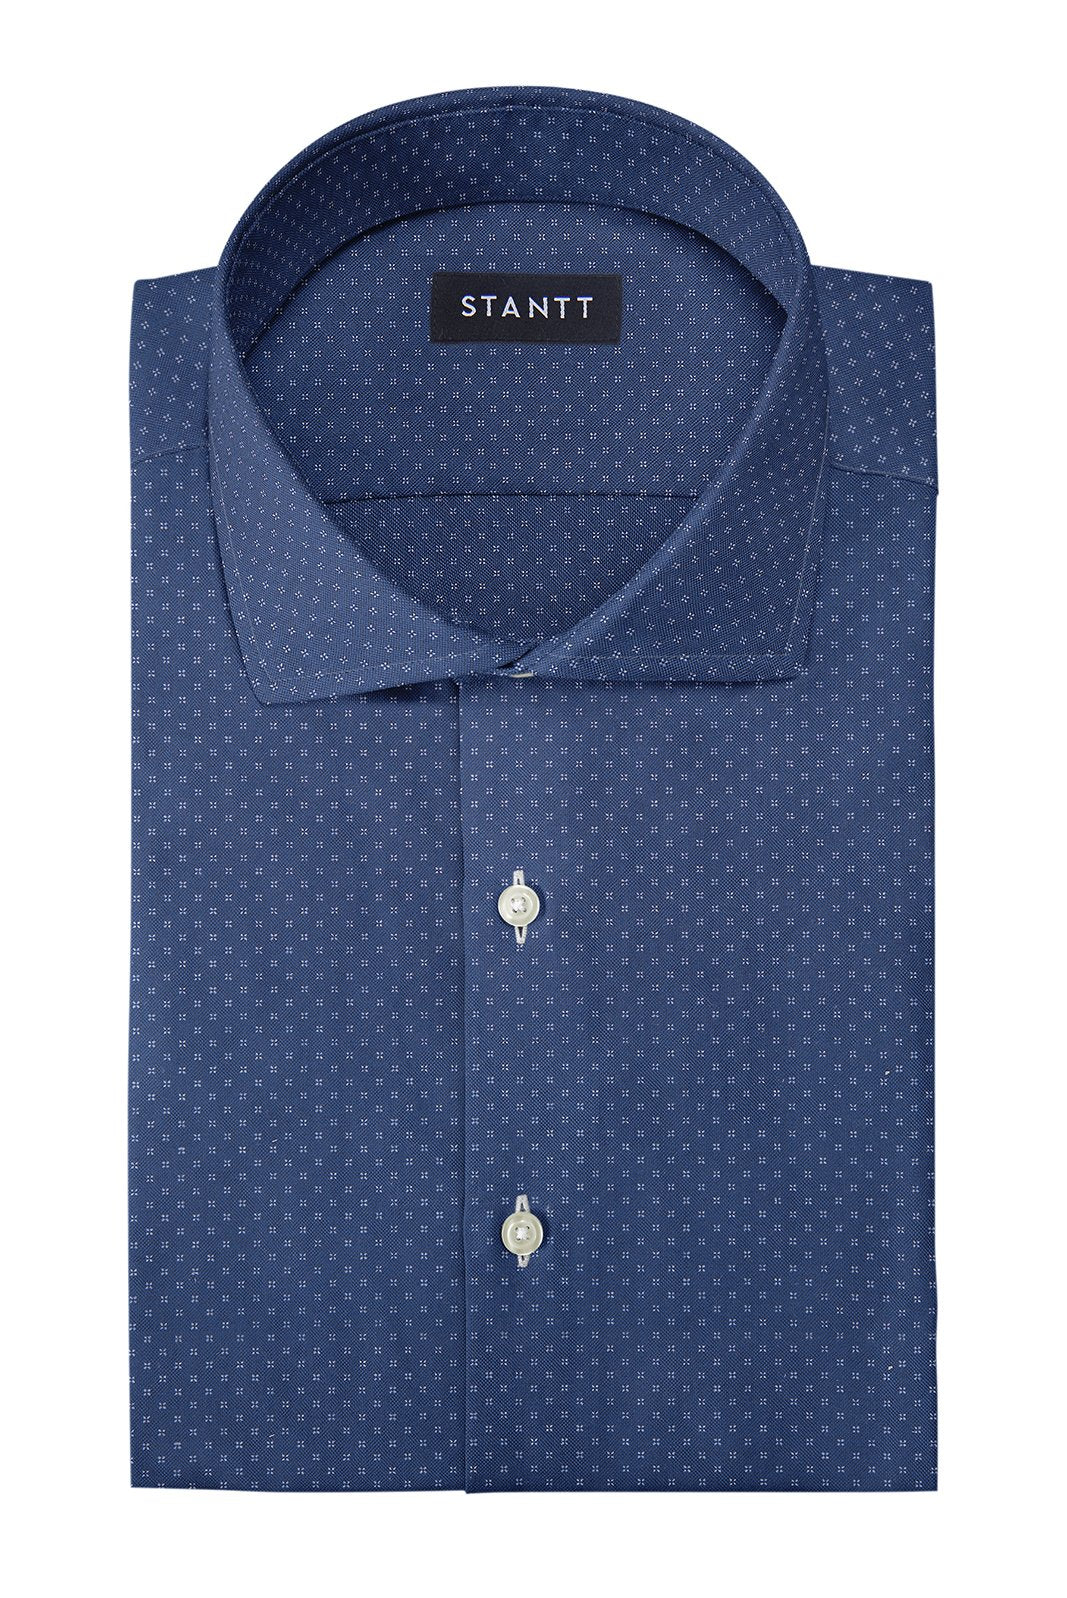 Navy Pinpoint Dot: Cutaway Collar, French Cuff